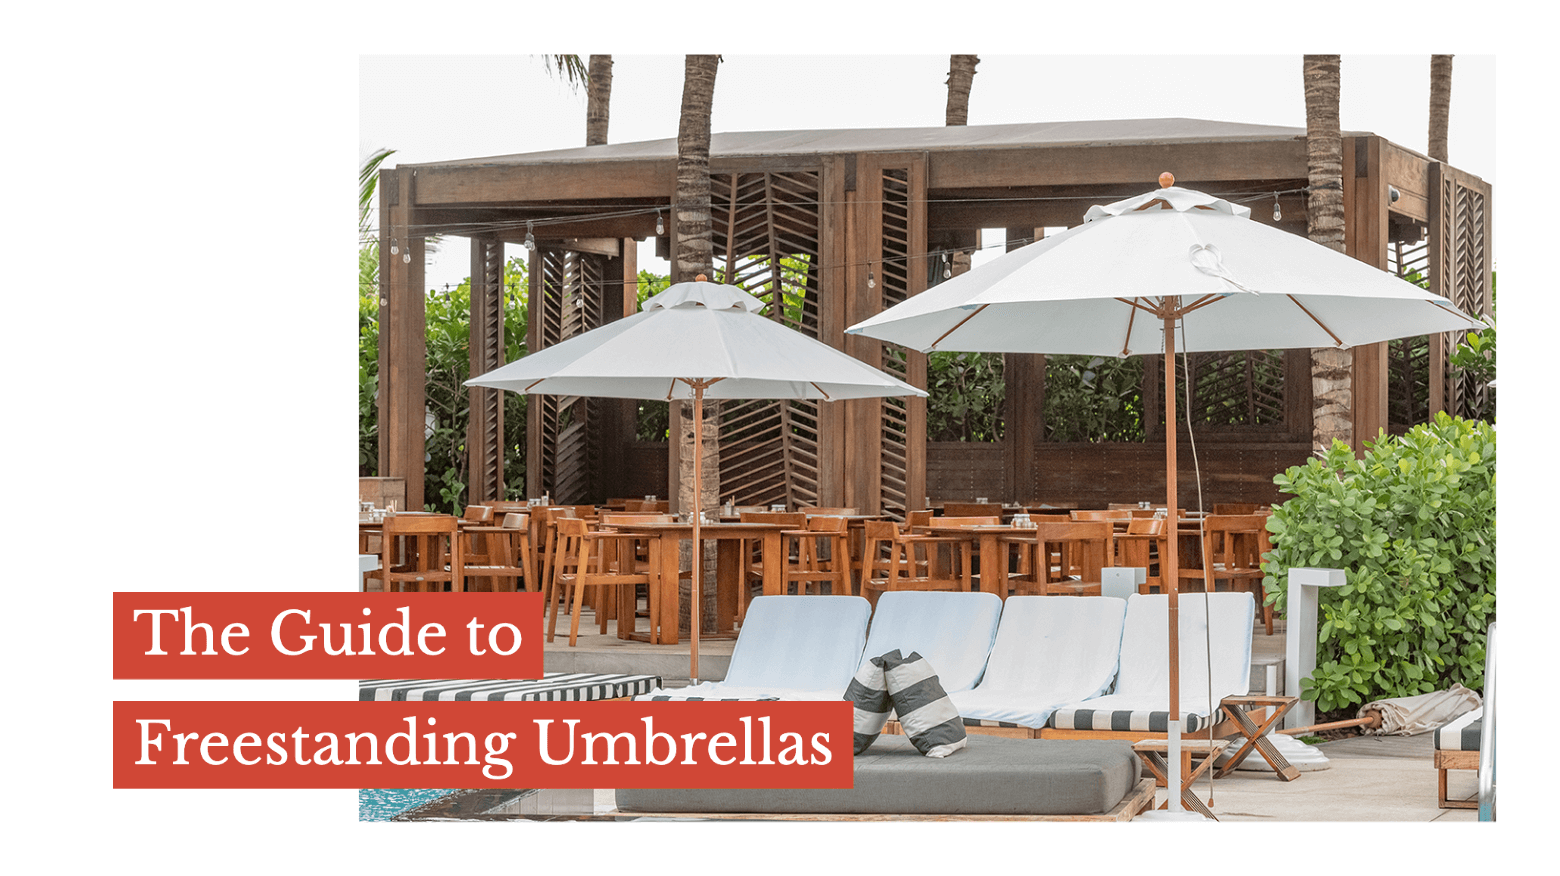 The Guide to Freestanding Umbrellas